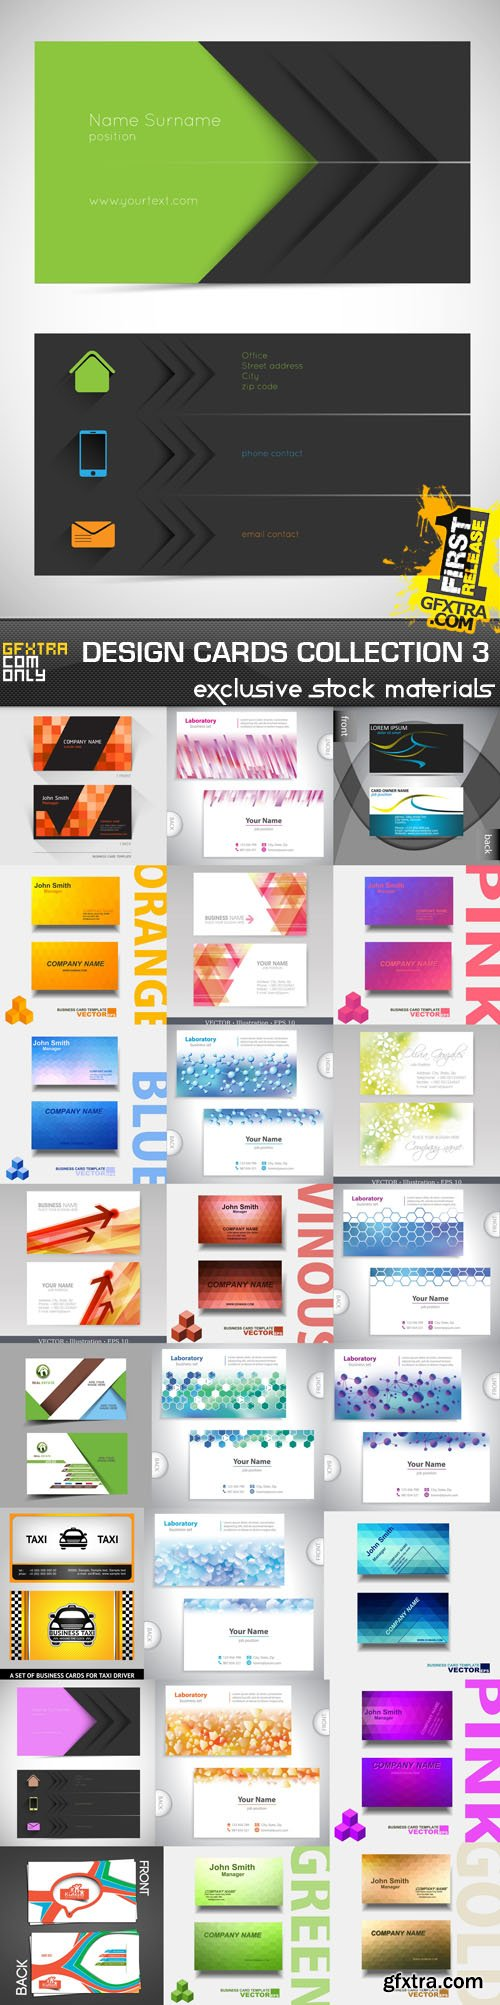 Design Cards Collection 3, 25xEPS